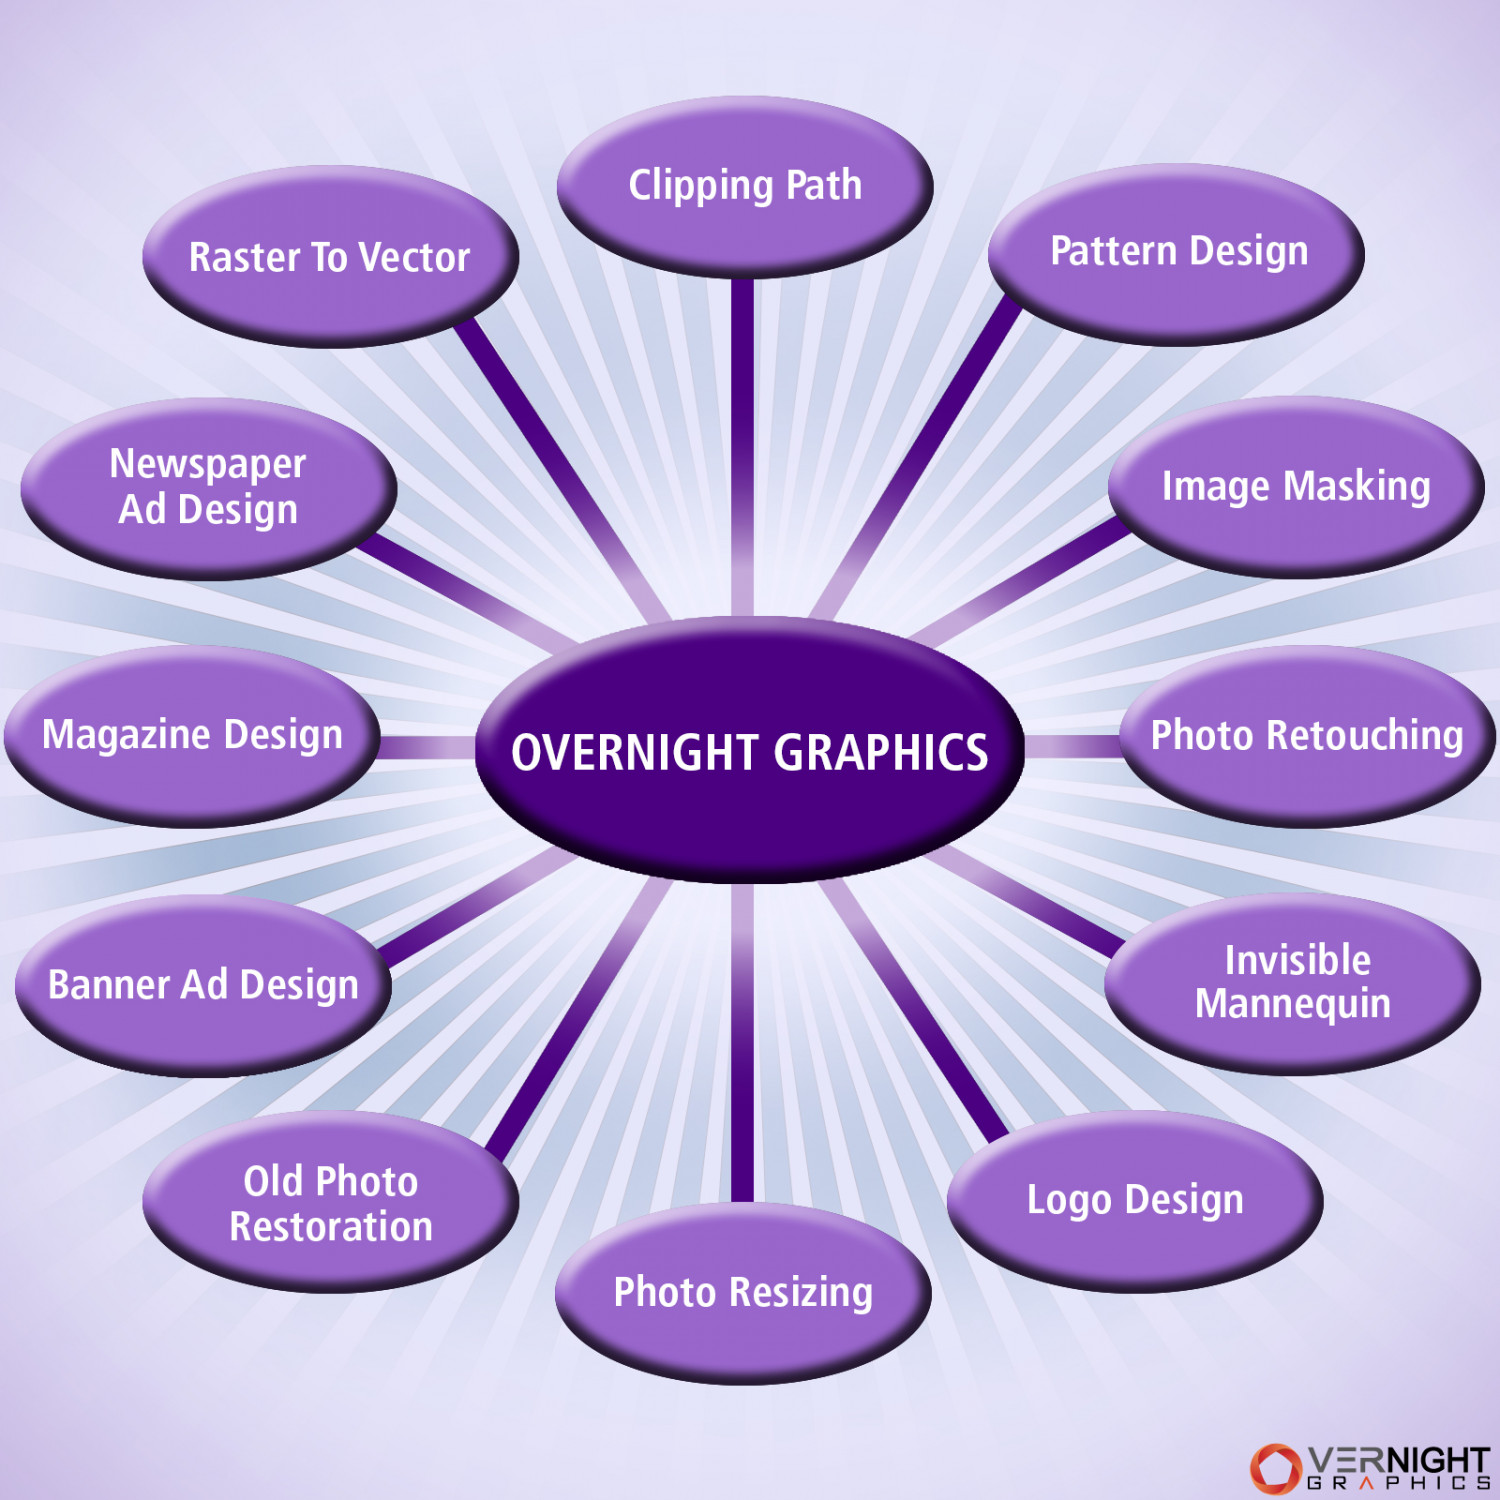 OverNight Graphics Company's Image Processing Procedure At A Glance Infographic